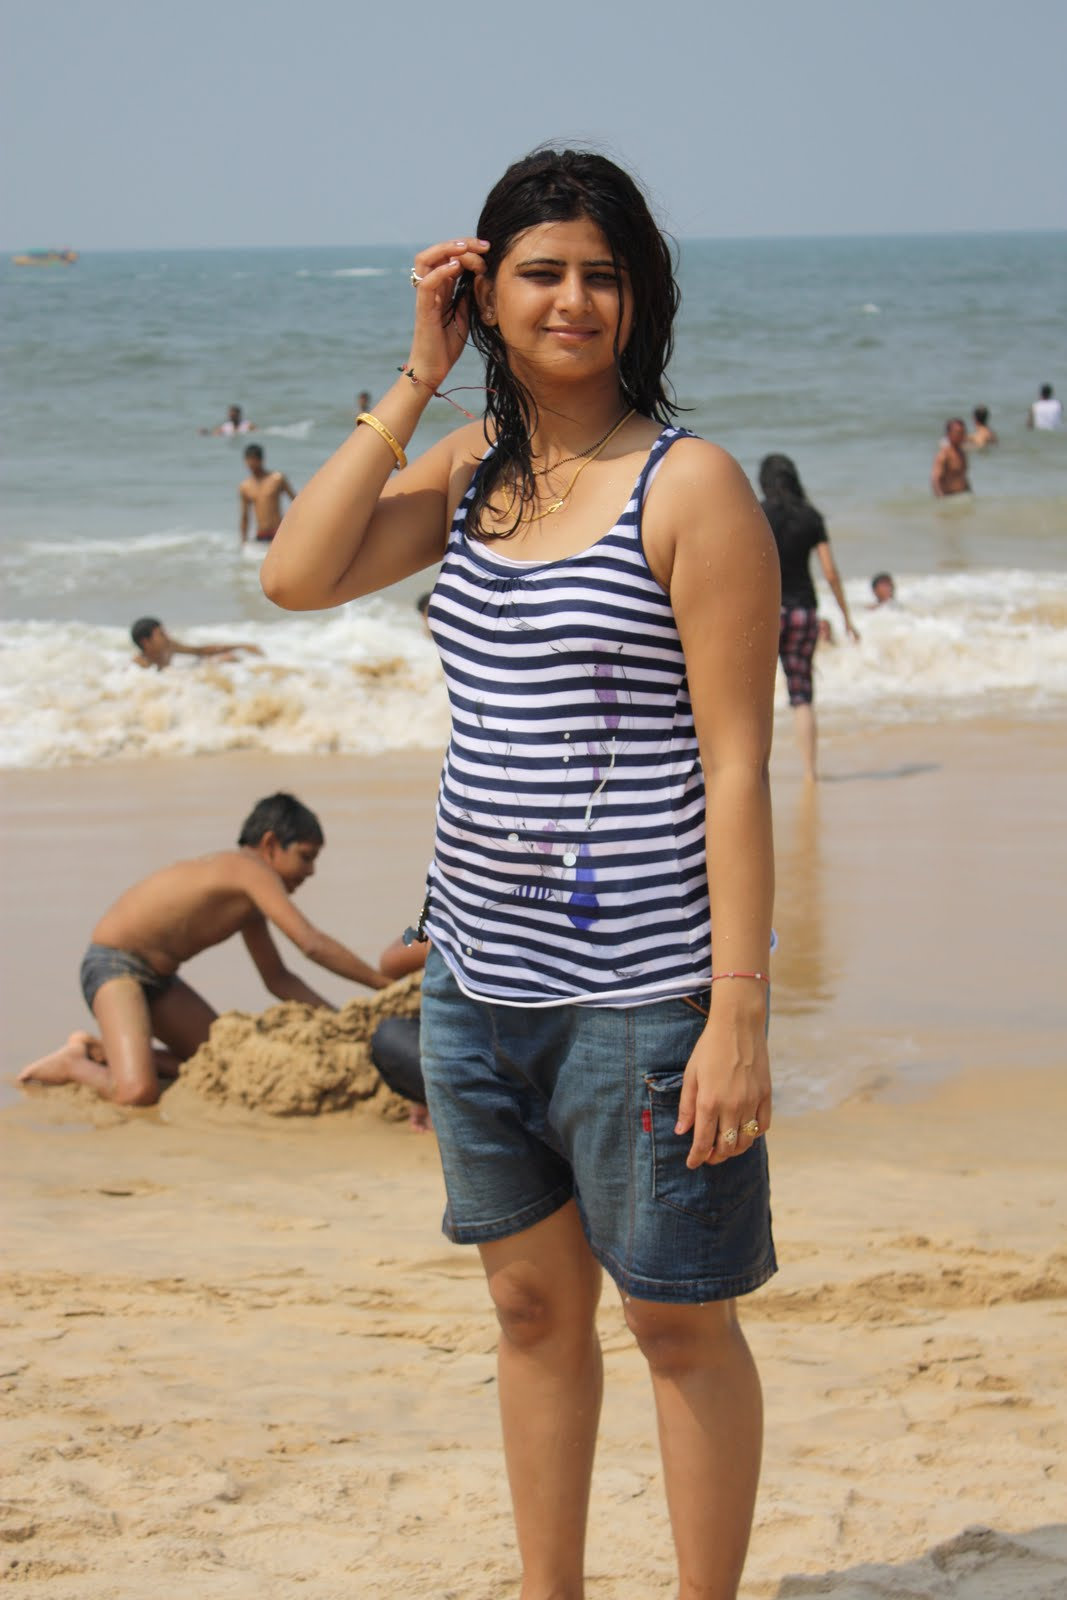 goa beach sex photos